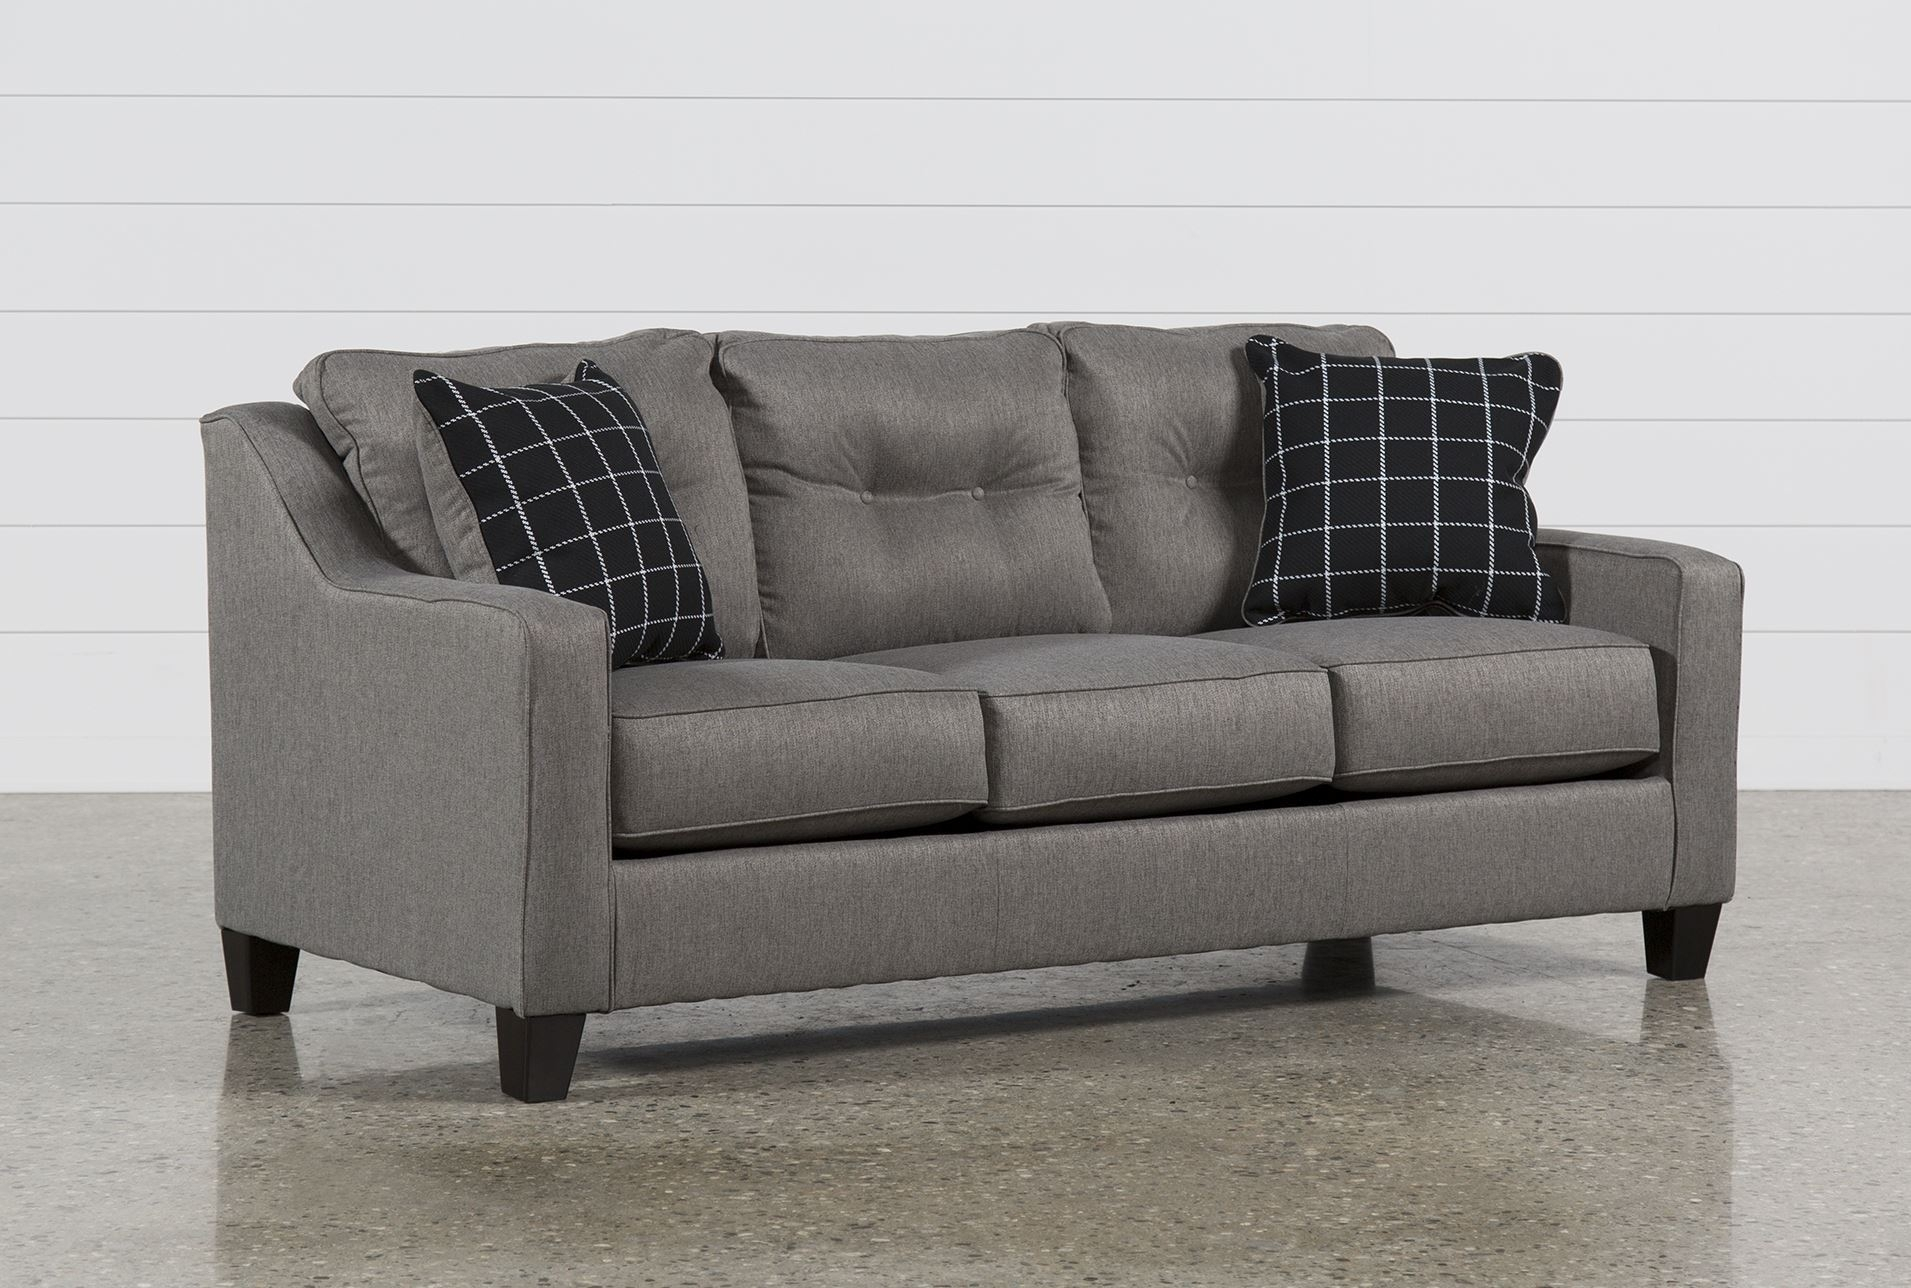 Living Spaces Sleeper Sofa – Home Decor 88 For Aspen 2 Piece Sleeper Sectionals With Raf Chaise (View 15 of 25)